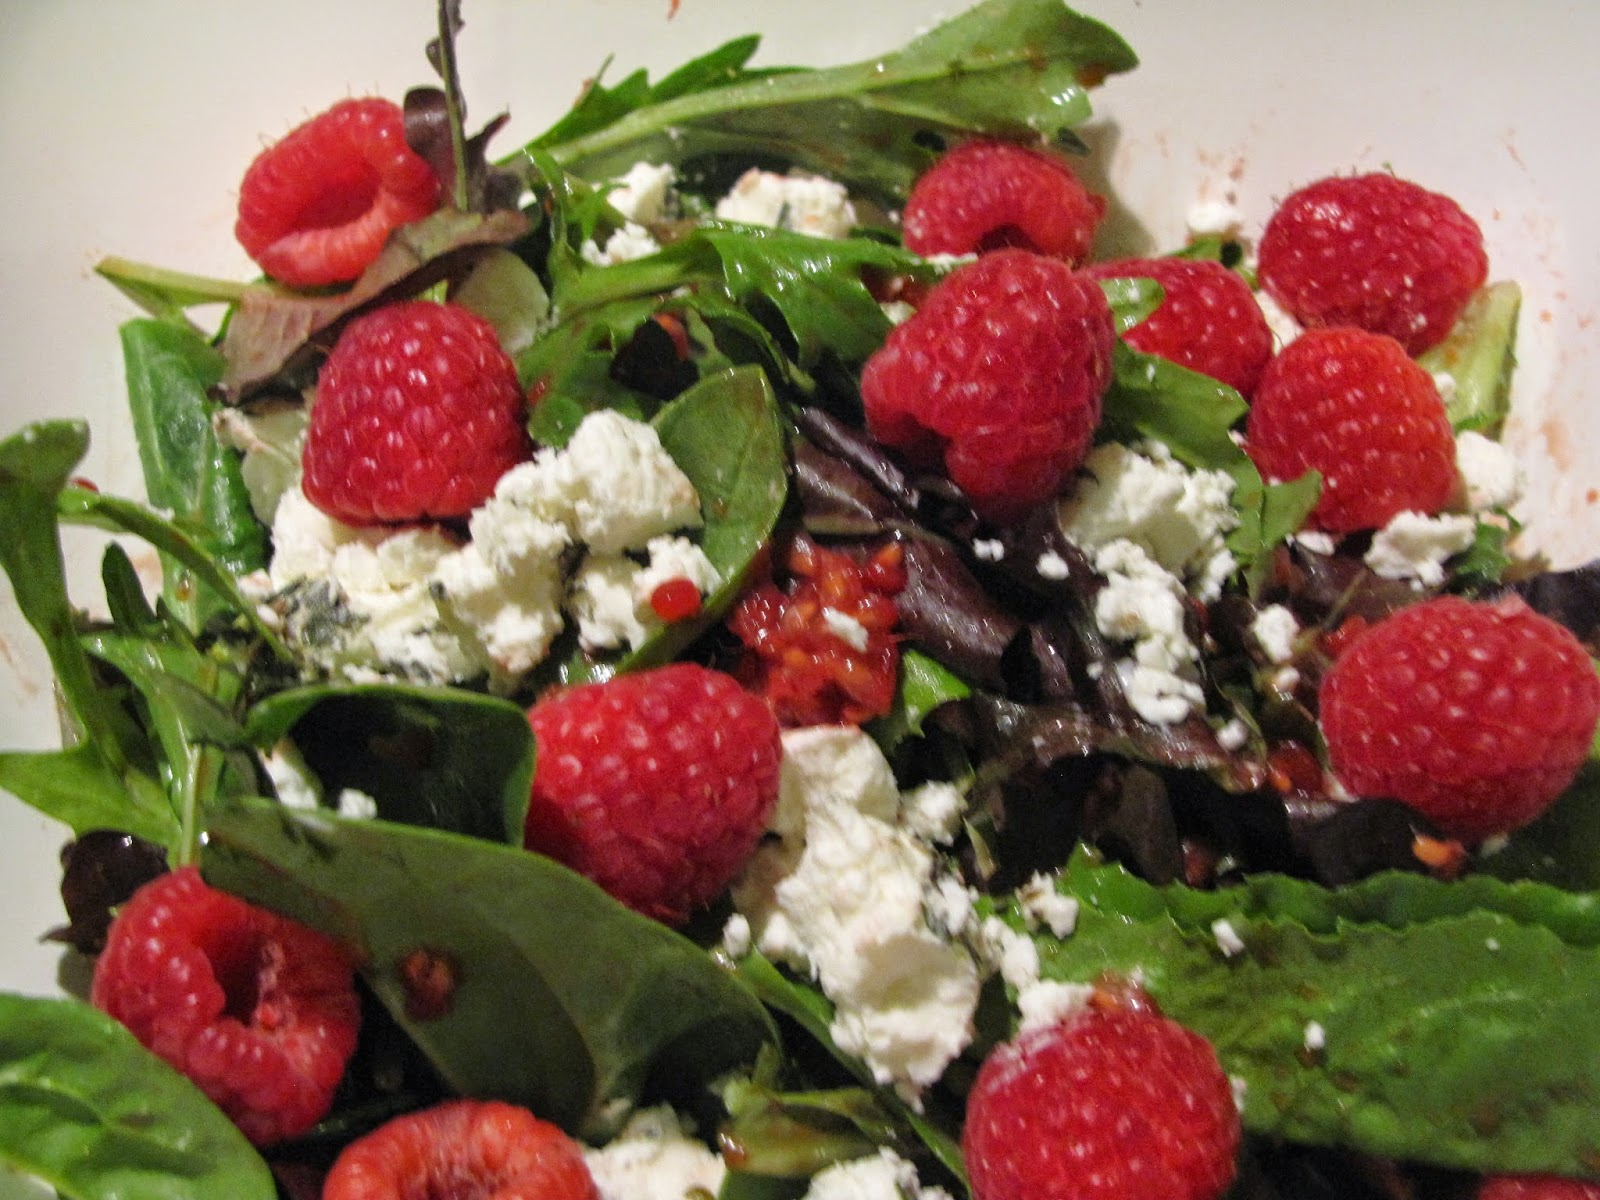 Spring Mix Green tossed with a raspberry pomegranate dressing and topped with herbed goat cheese